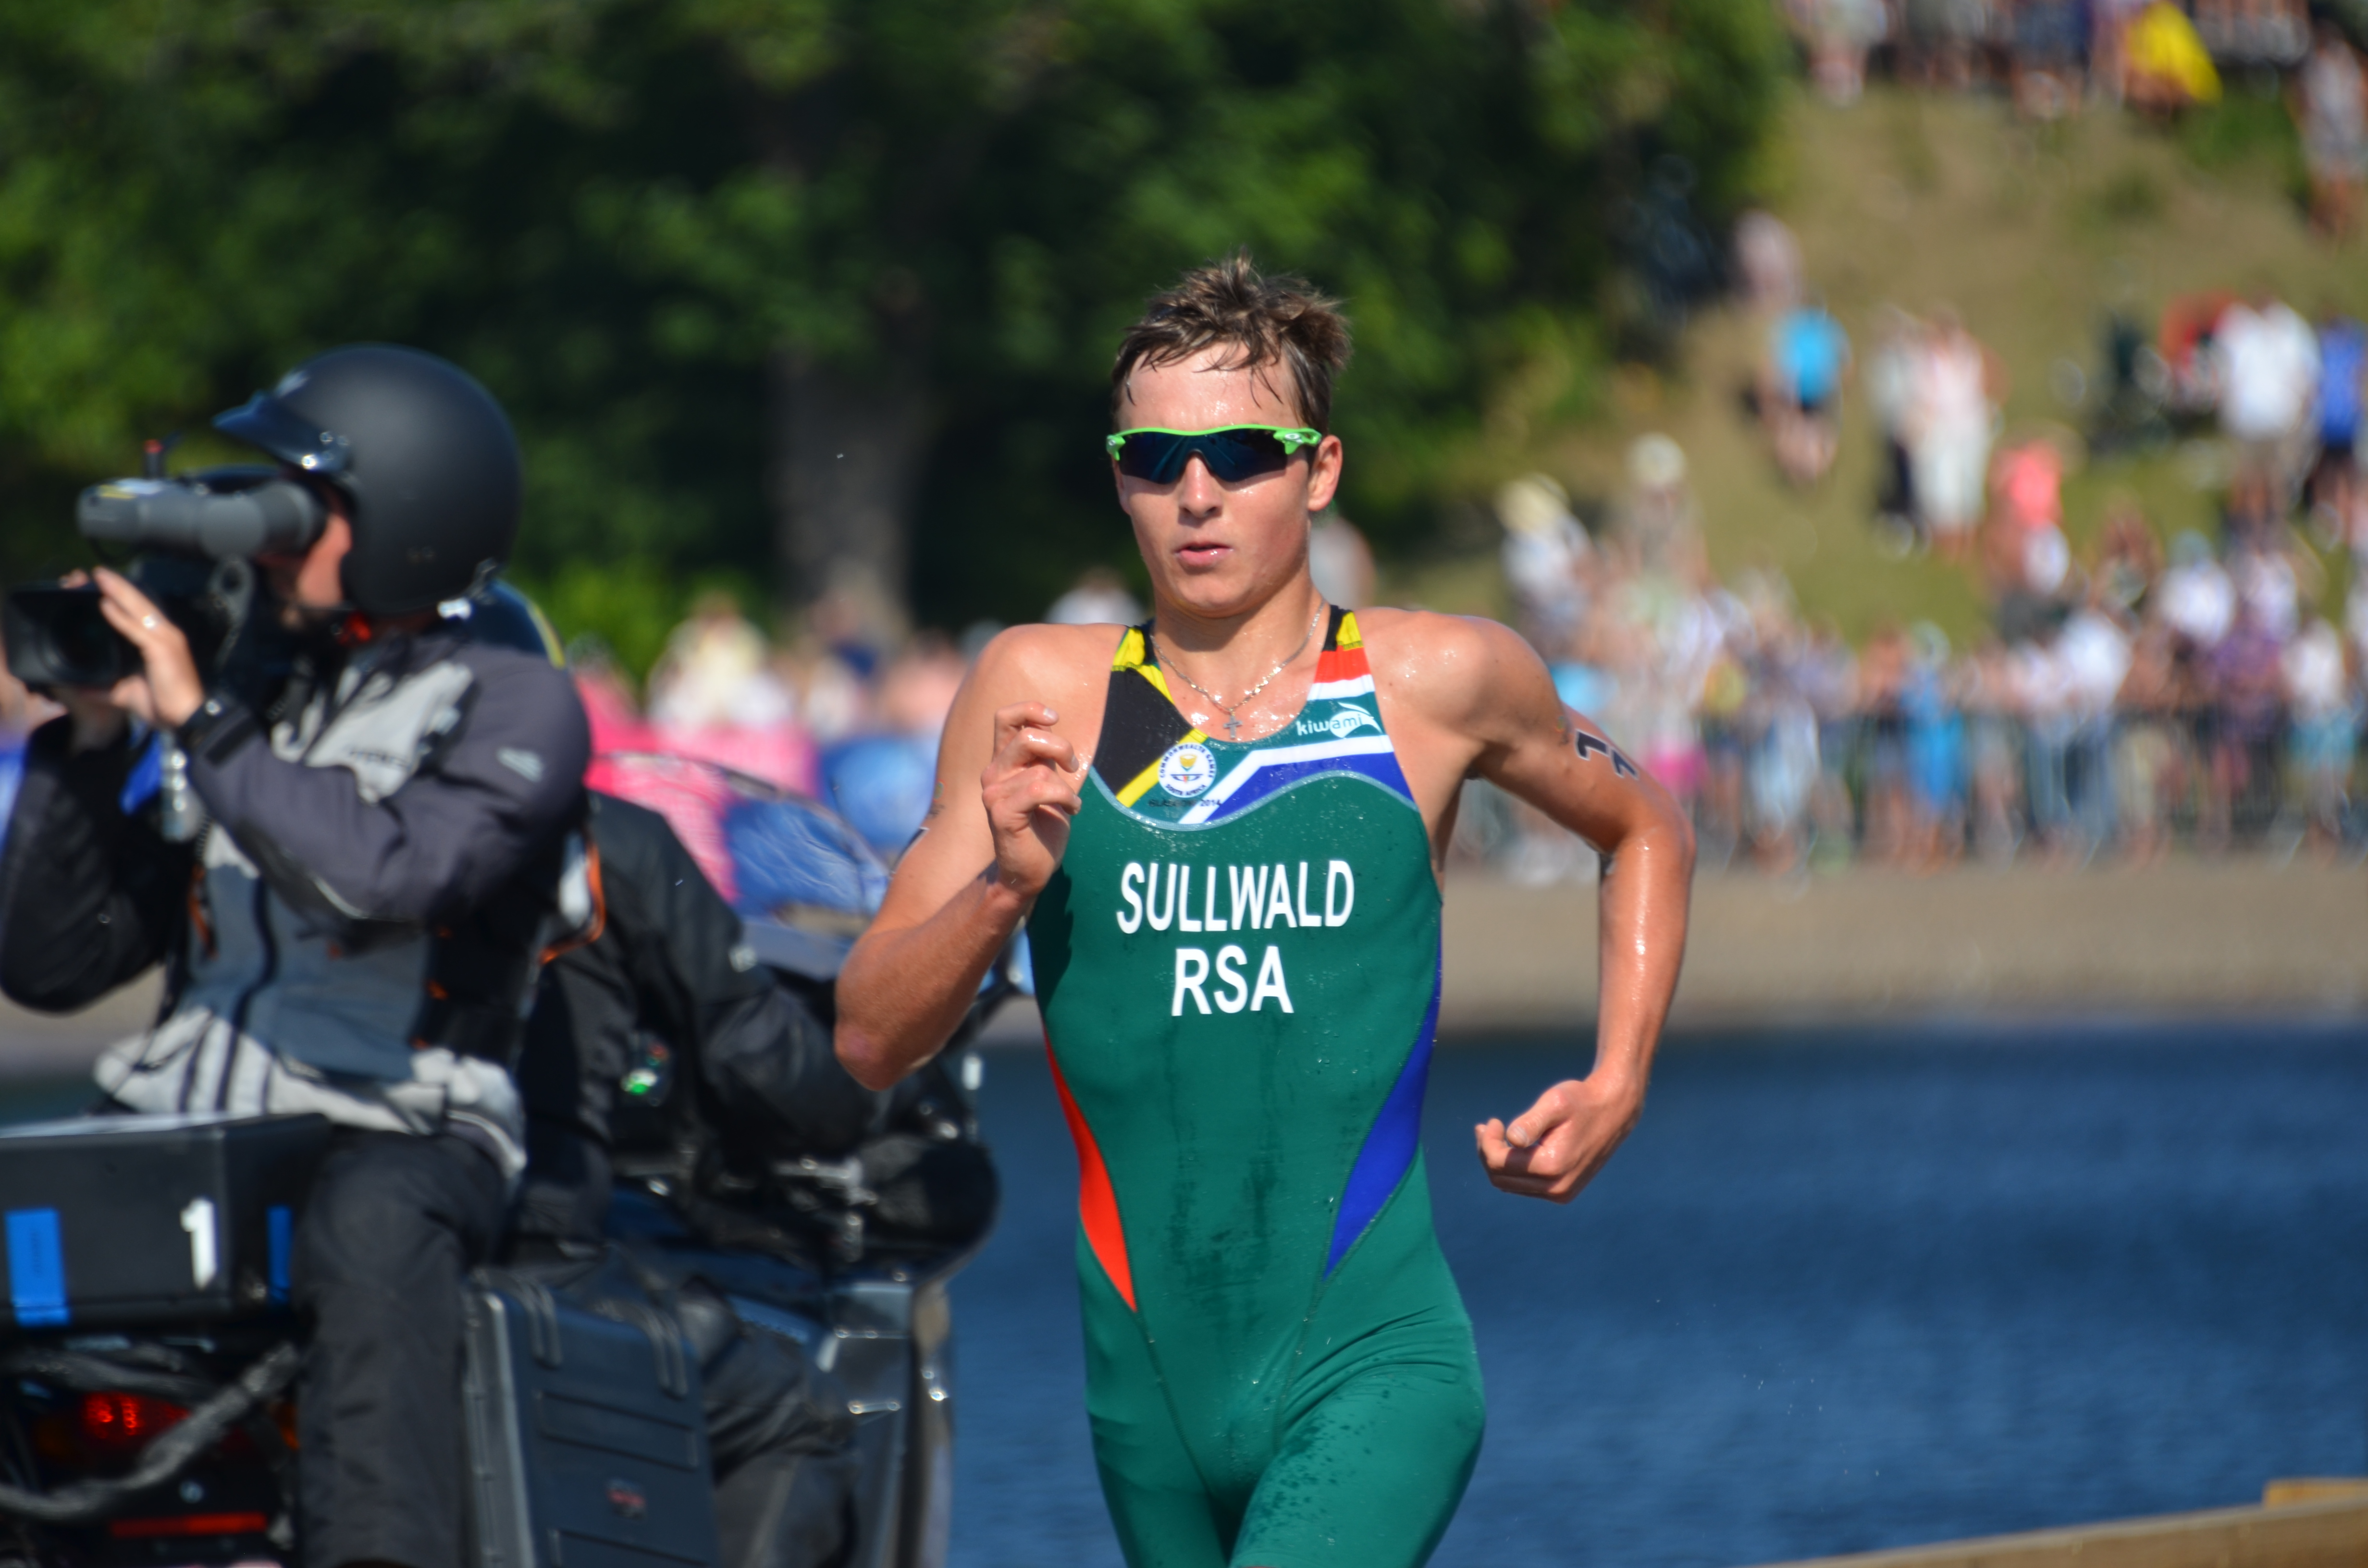 Sullwald in race against time ahead of Cape Town showdown